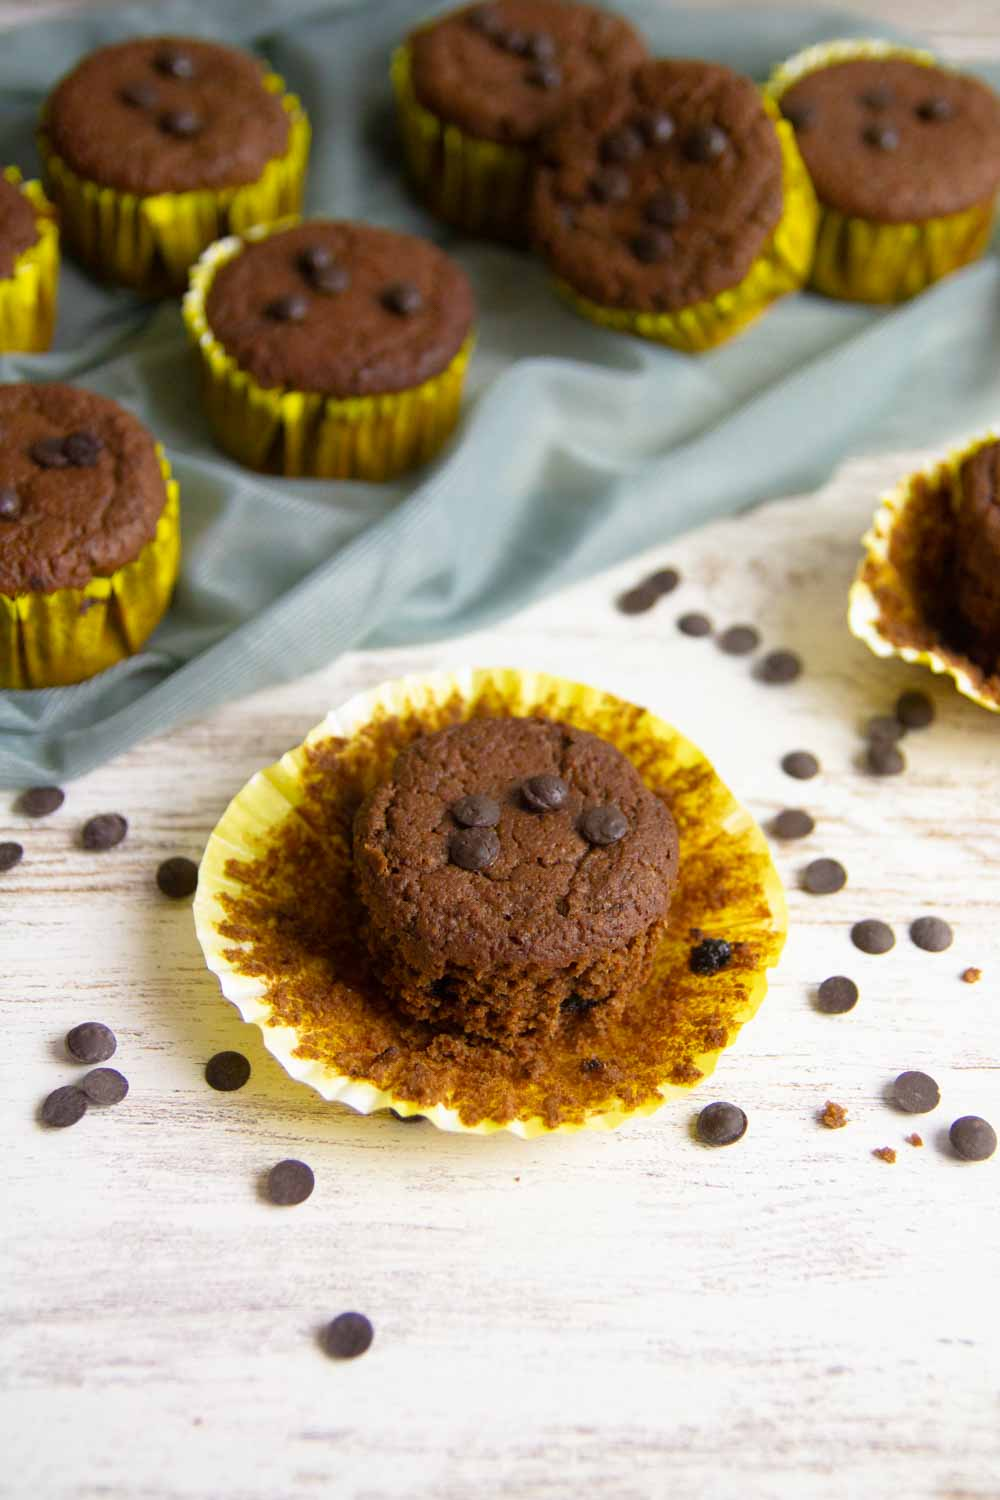 Keto Mocha Chocolate Chip Muffins, an easy muffins recipe to make in a few steps. Best for breakfast, tea time or any other time you crave for sweet.